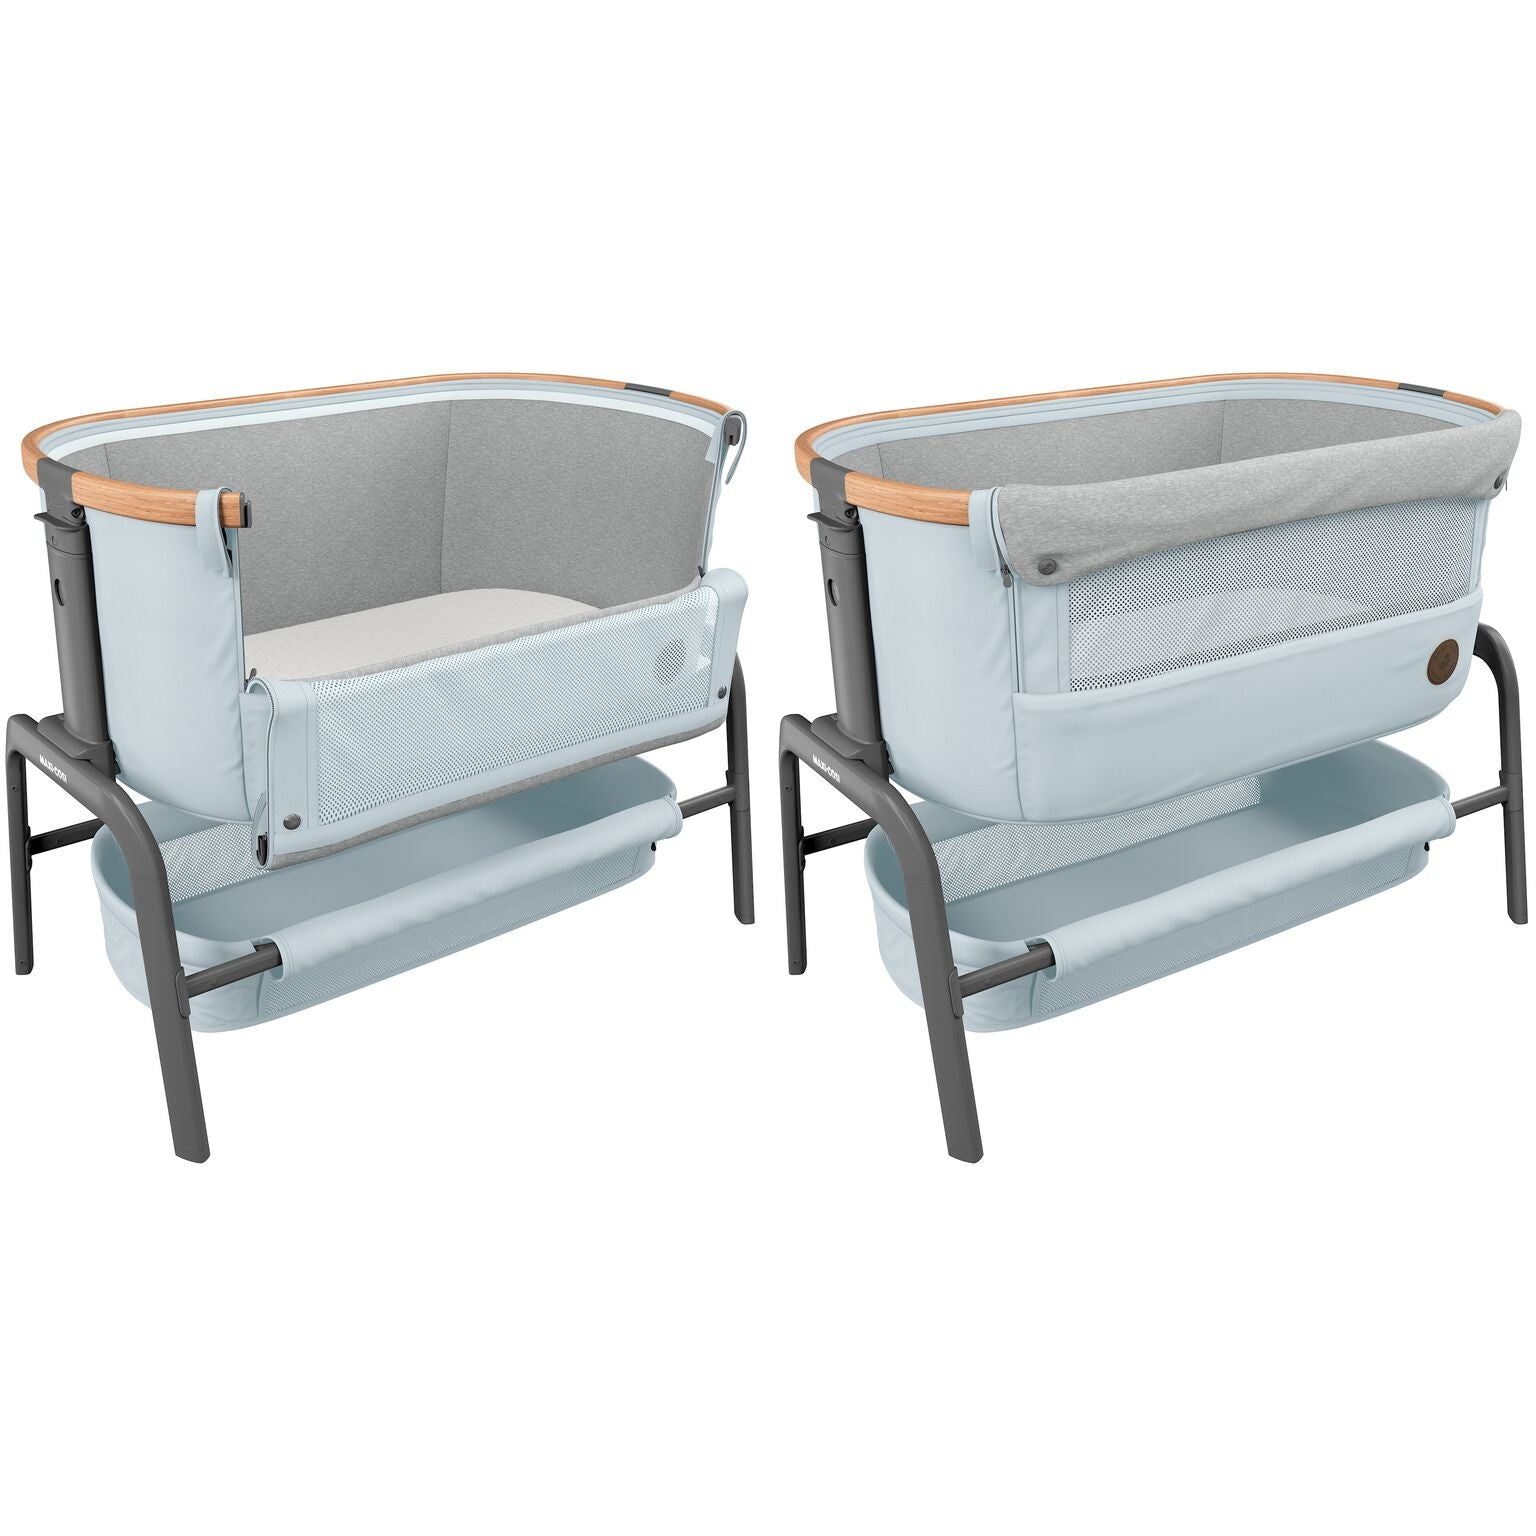 Maxi-Cosi Iora bedside sleeper Next to me Crib gray